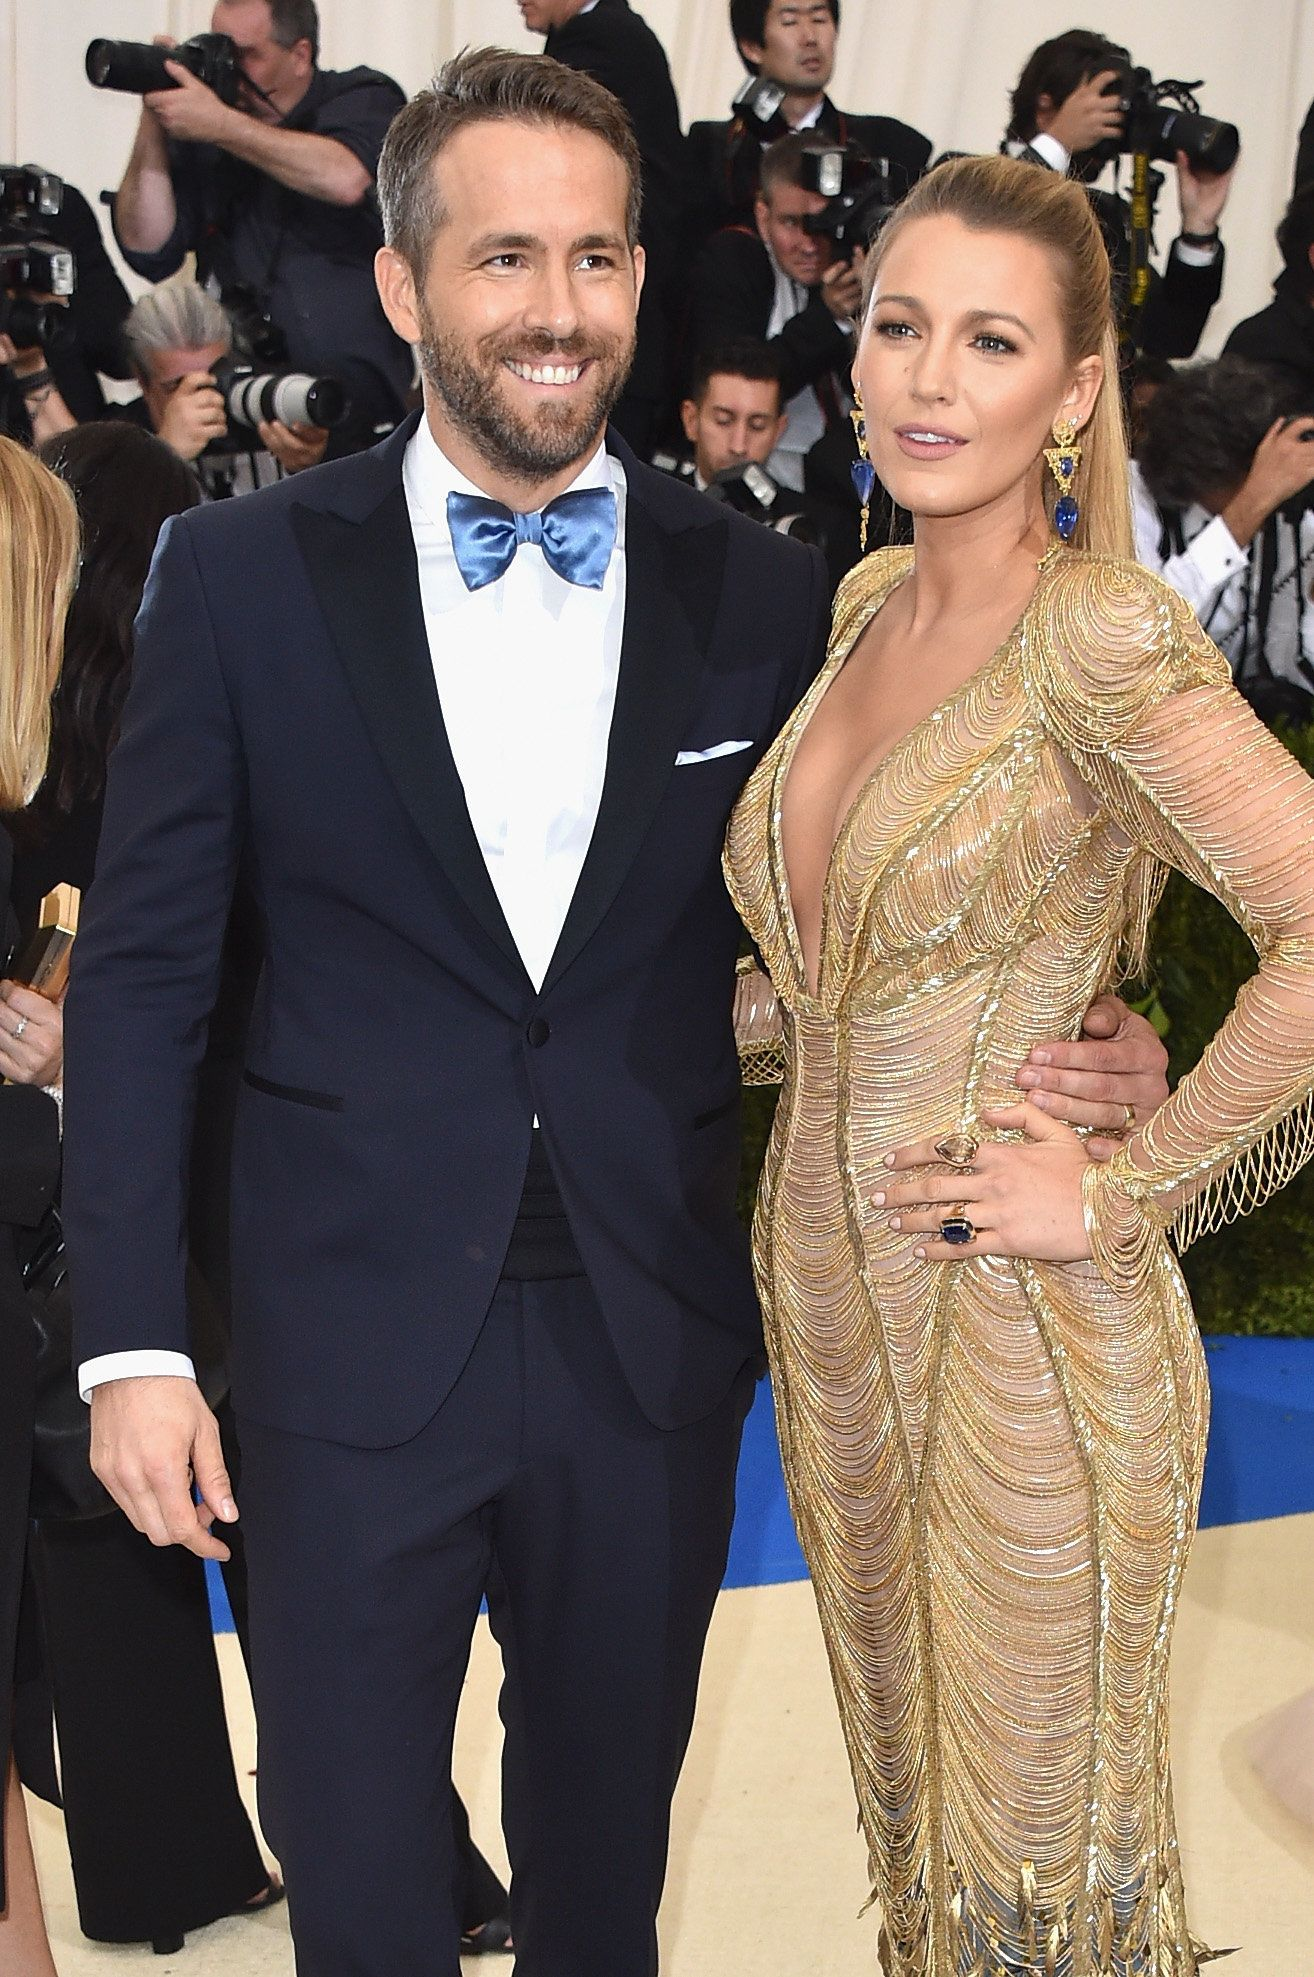 NEW YORK, NY - MAY 01:  Ryan Reynolds (L) and Blake Lively attend the 'Rei Kawakubo/Comme des Garcons: Art Of The In-Between' Costume Institute Gala at Metropolitan Museum of Art on May 1, 2017 in New York City.  (Photo by John Shearer/Getty Images)